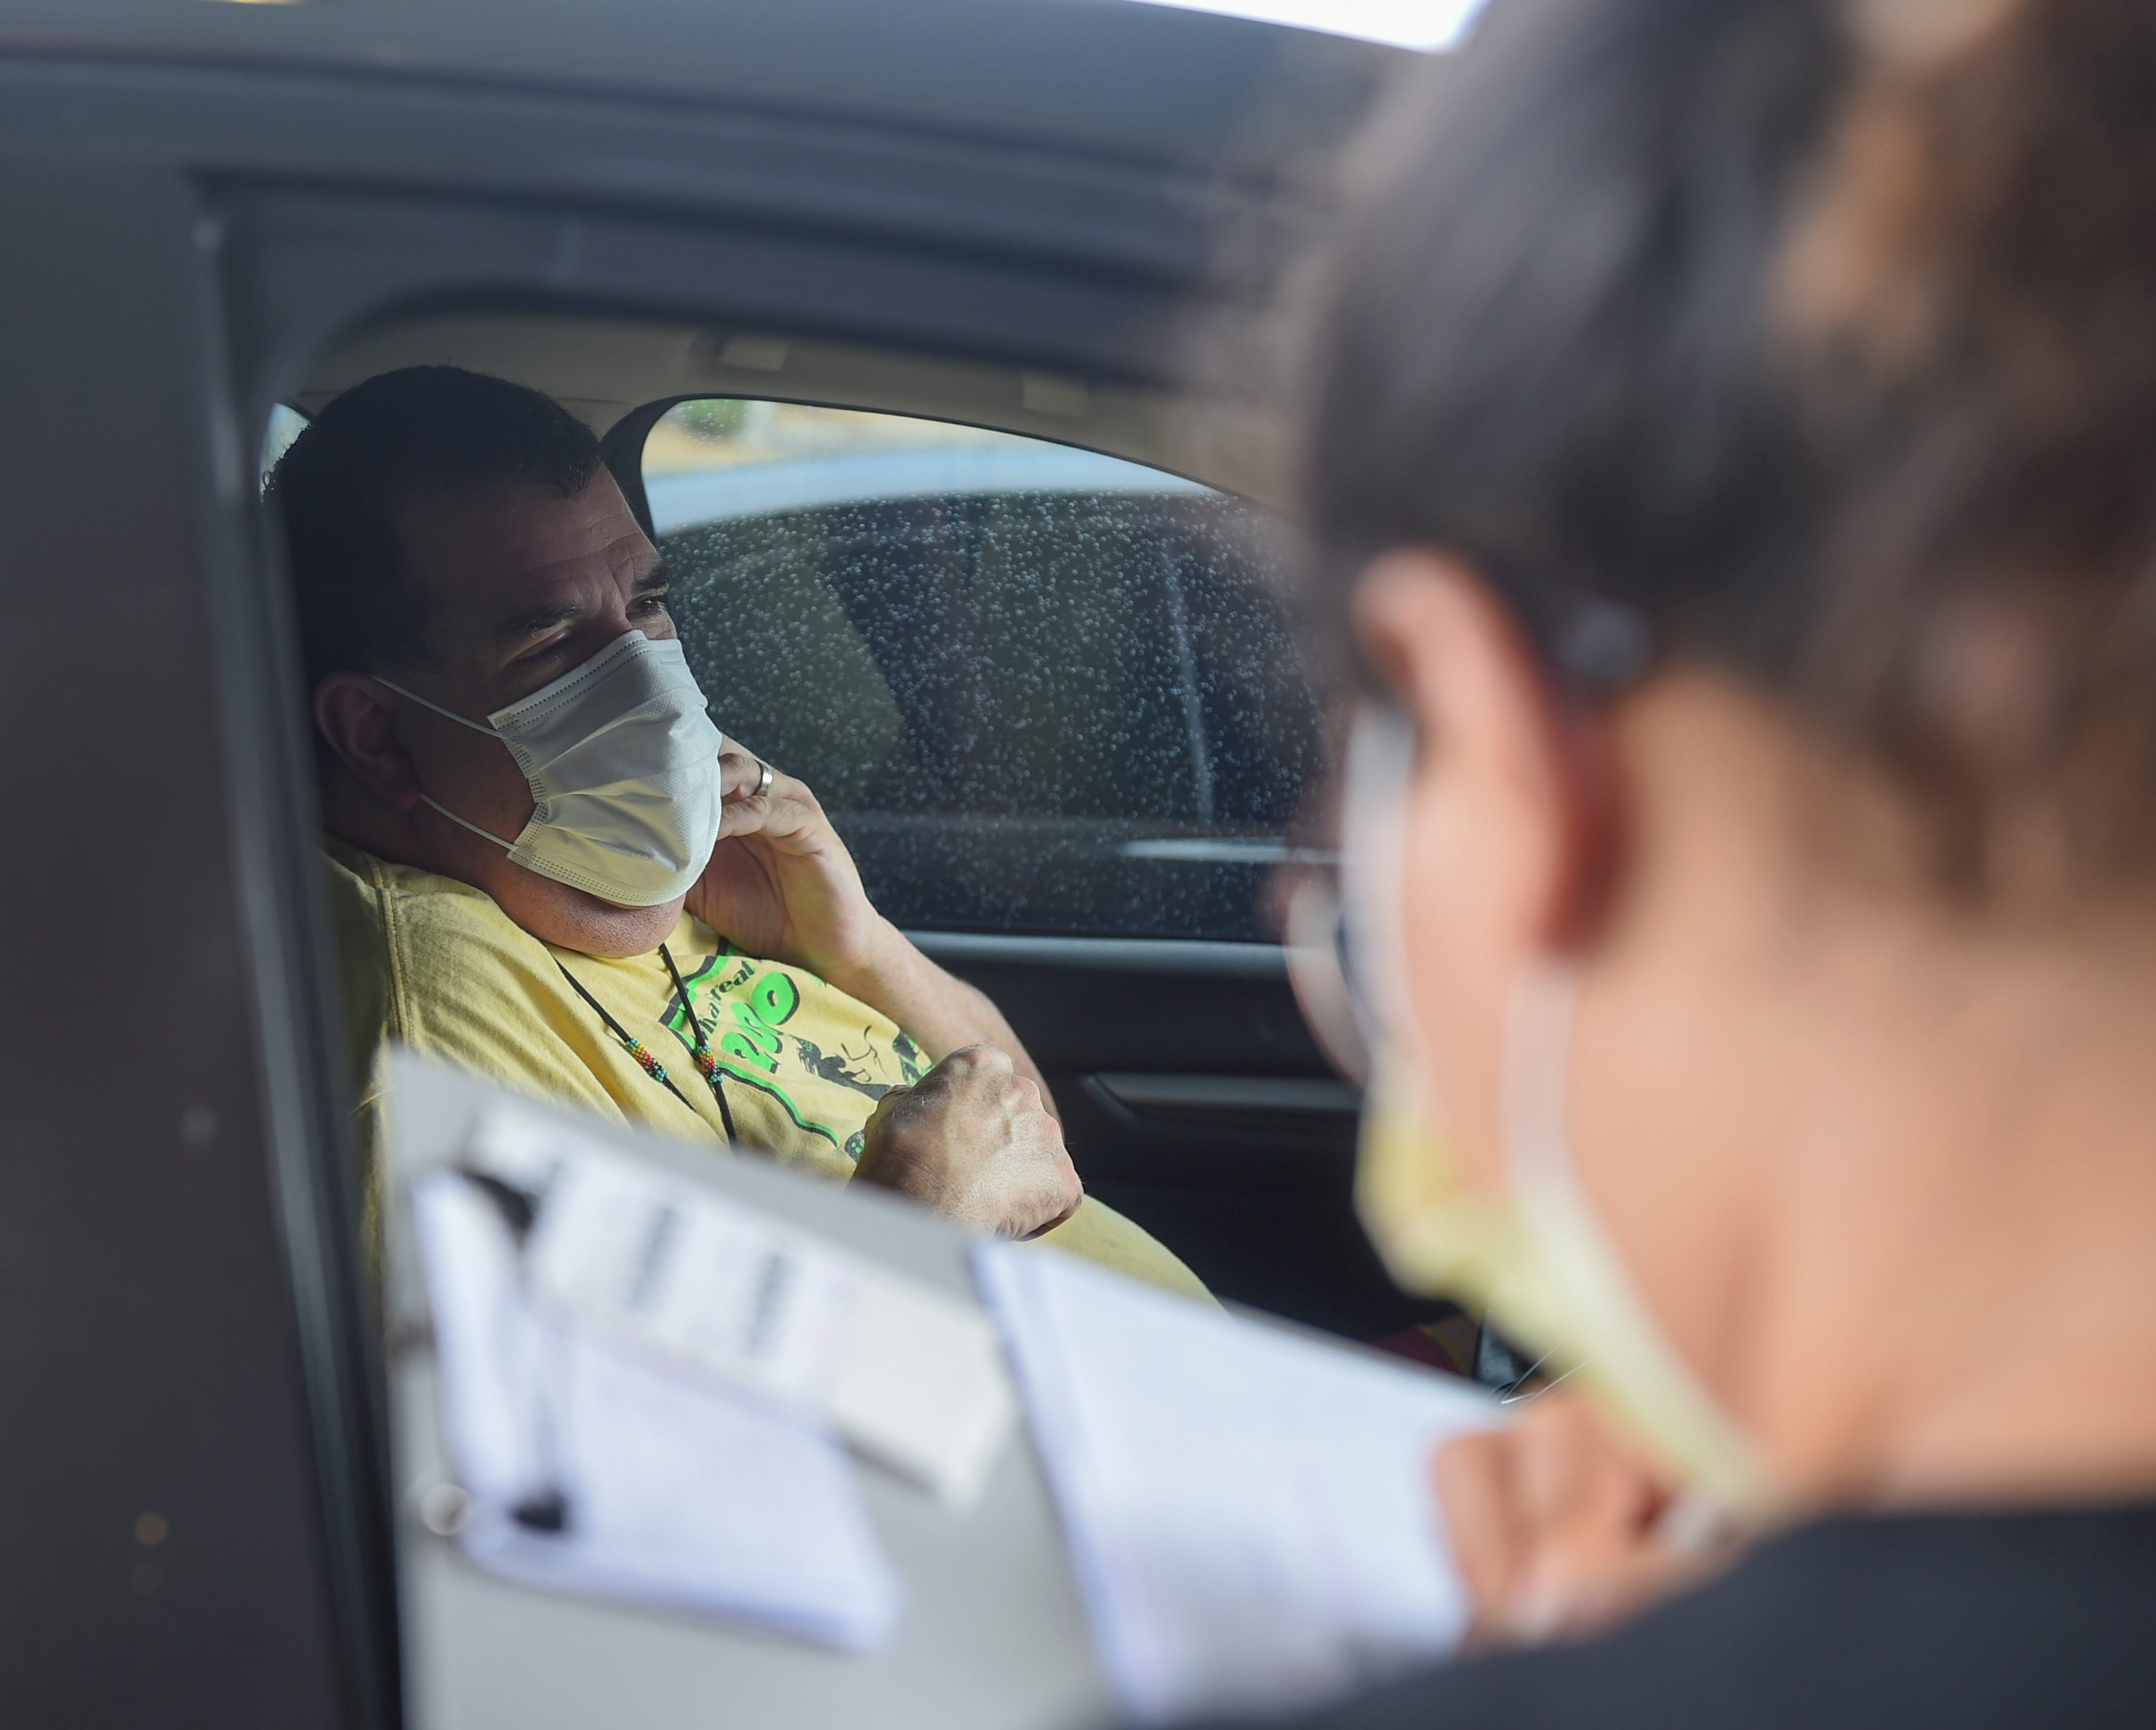 LouRayne Baza, an American Medical Center nurse lead, screens a patient at their drive-up service in Mangilao, March 28, 2020. American Medical Center employees have set up a drive-up screening service before processing, as a safety precaution in accordance with the governor's executive order, during the COVID-19 pandemic.